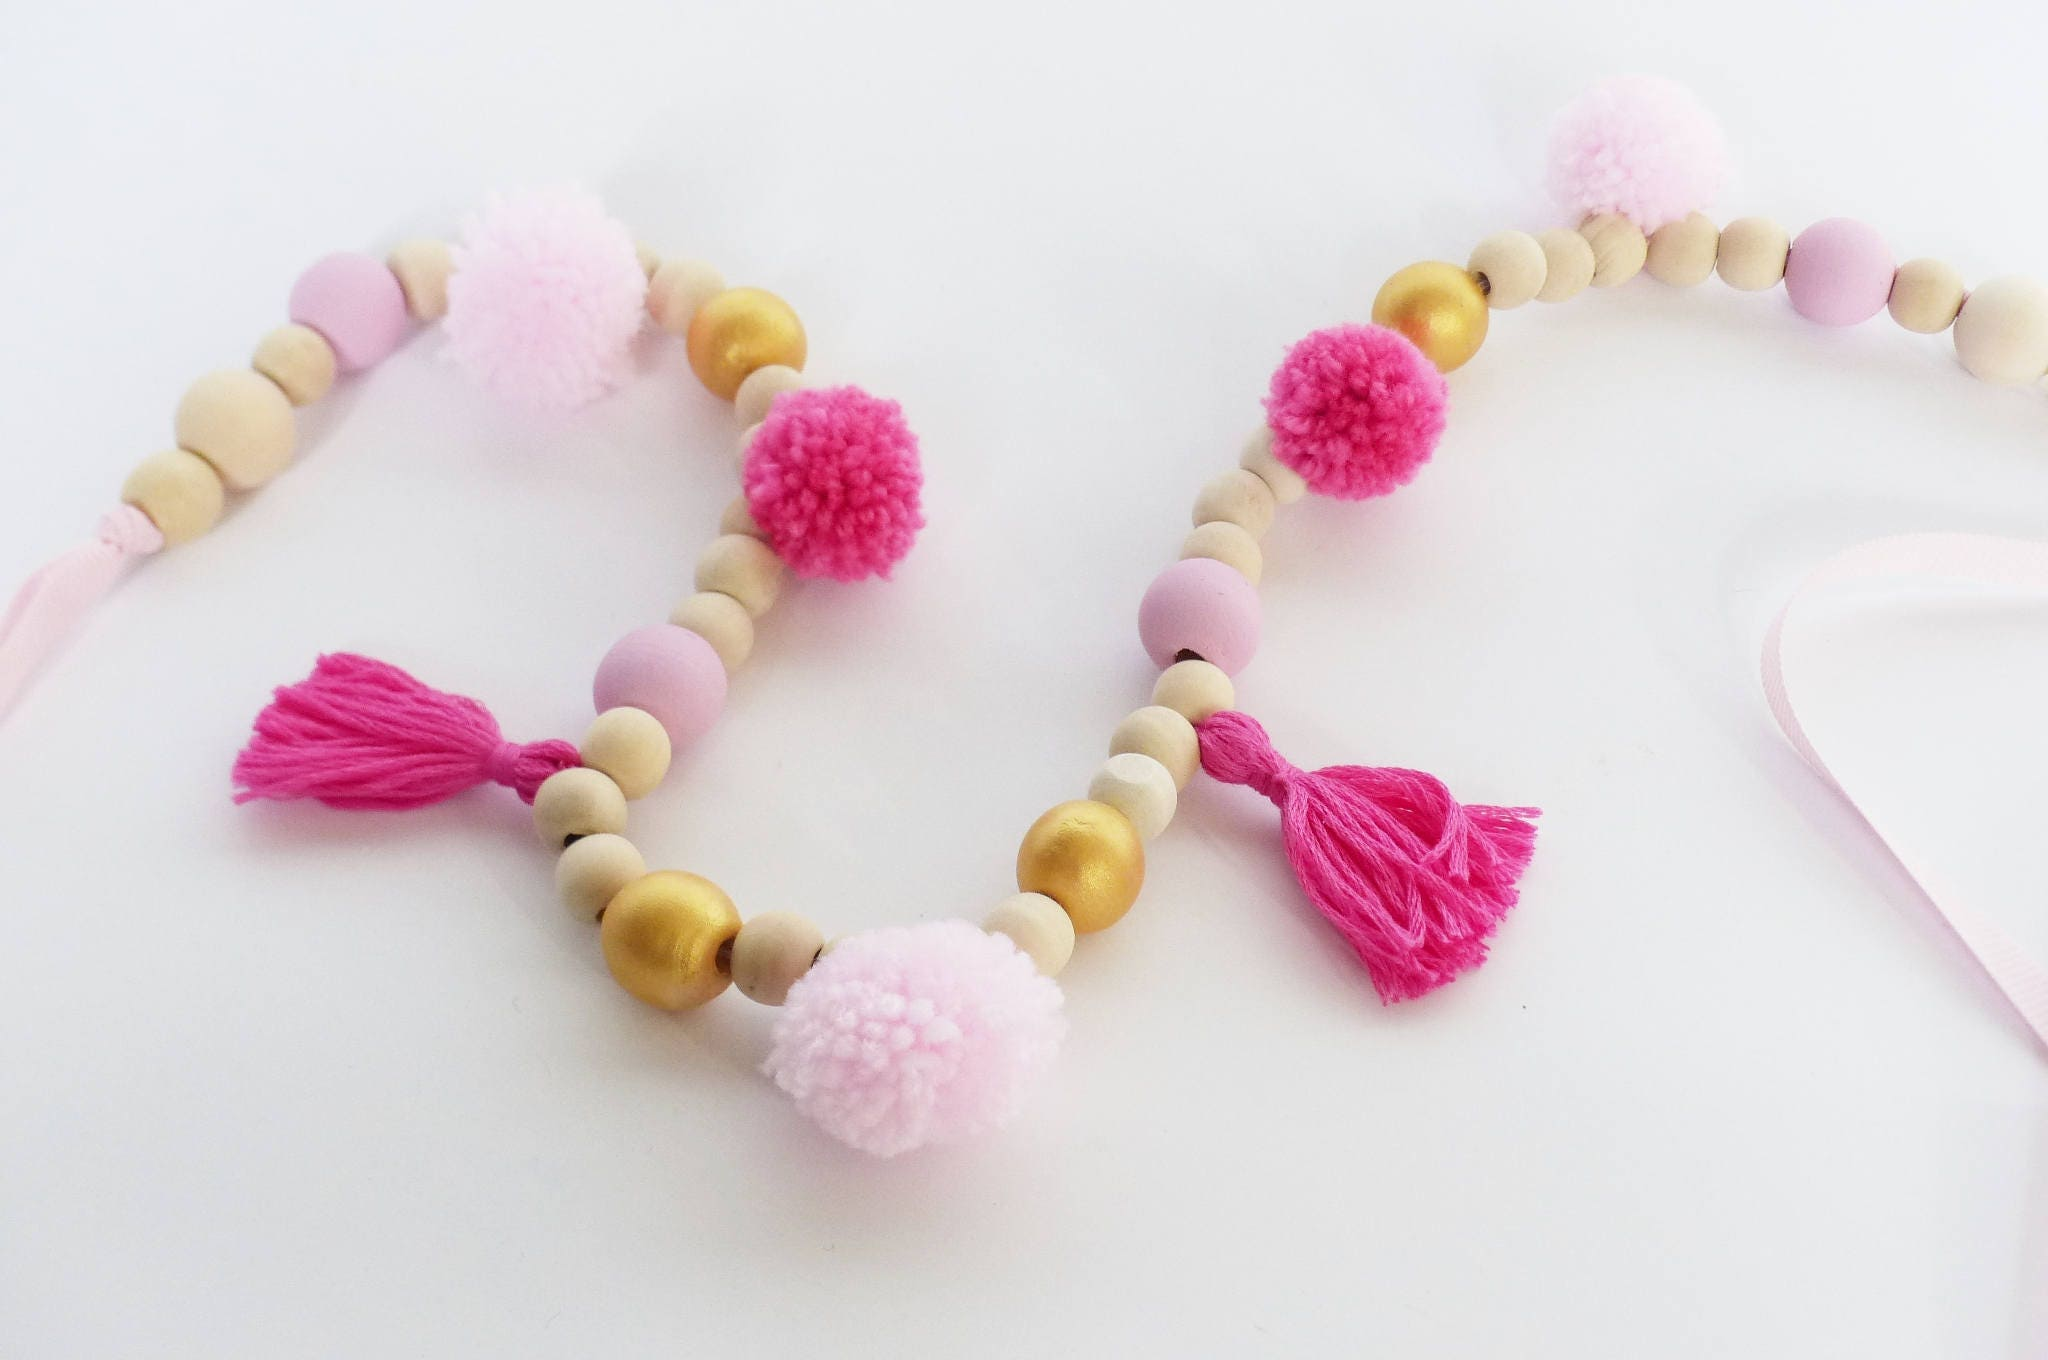 Cadeau Originale Baby Shower garland tassels and wooden beads pink, fuchsia and golden